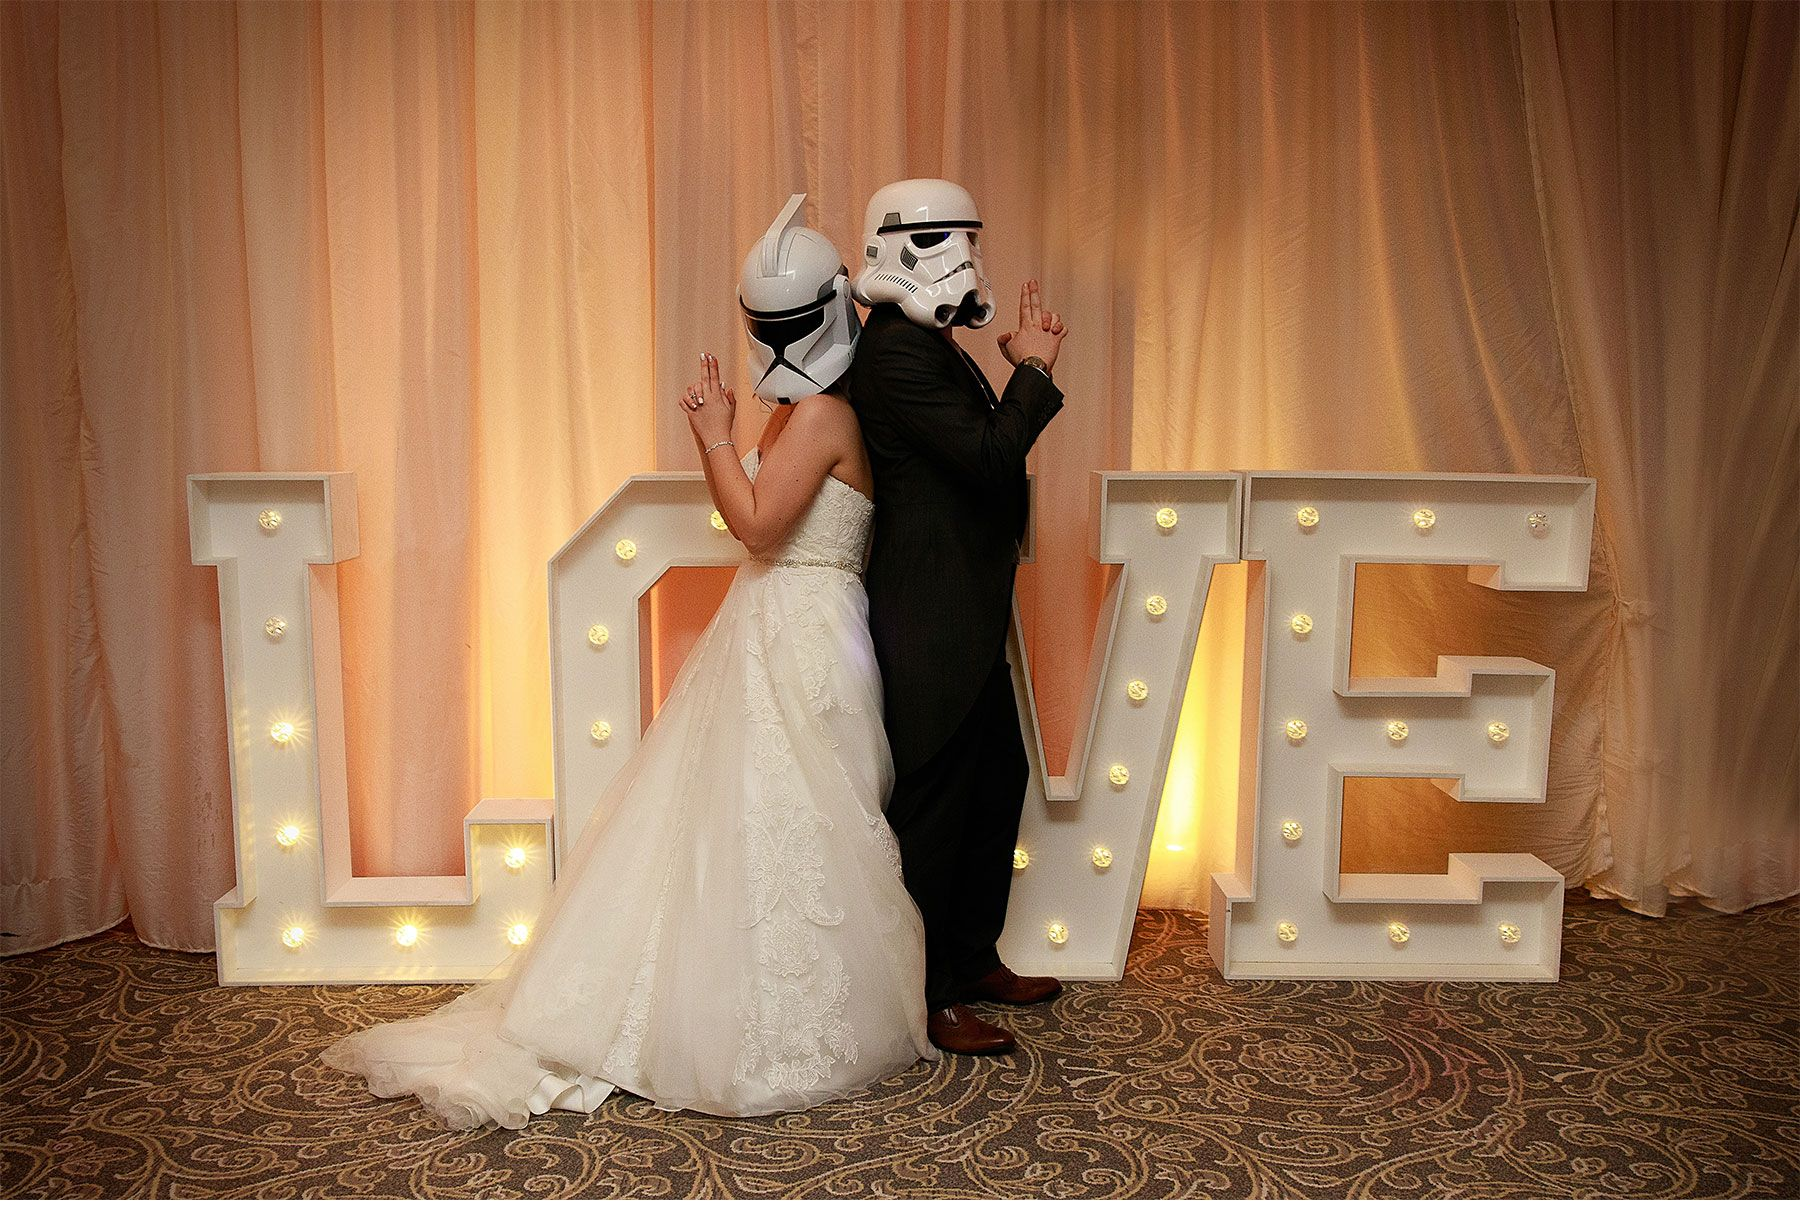 star wars trooper helmets fun bride and groom